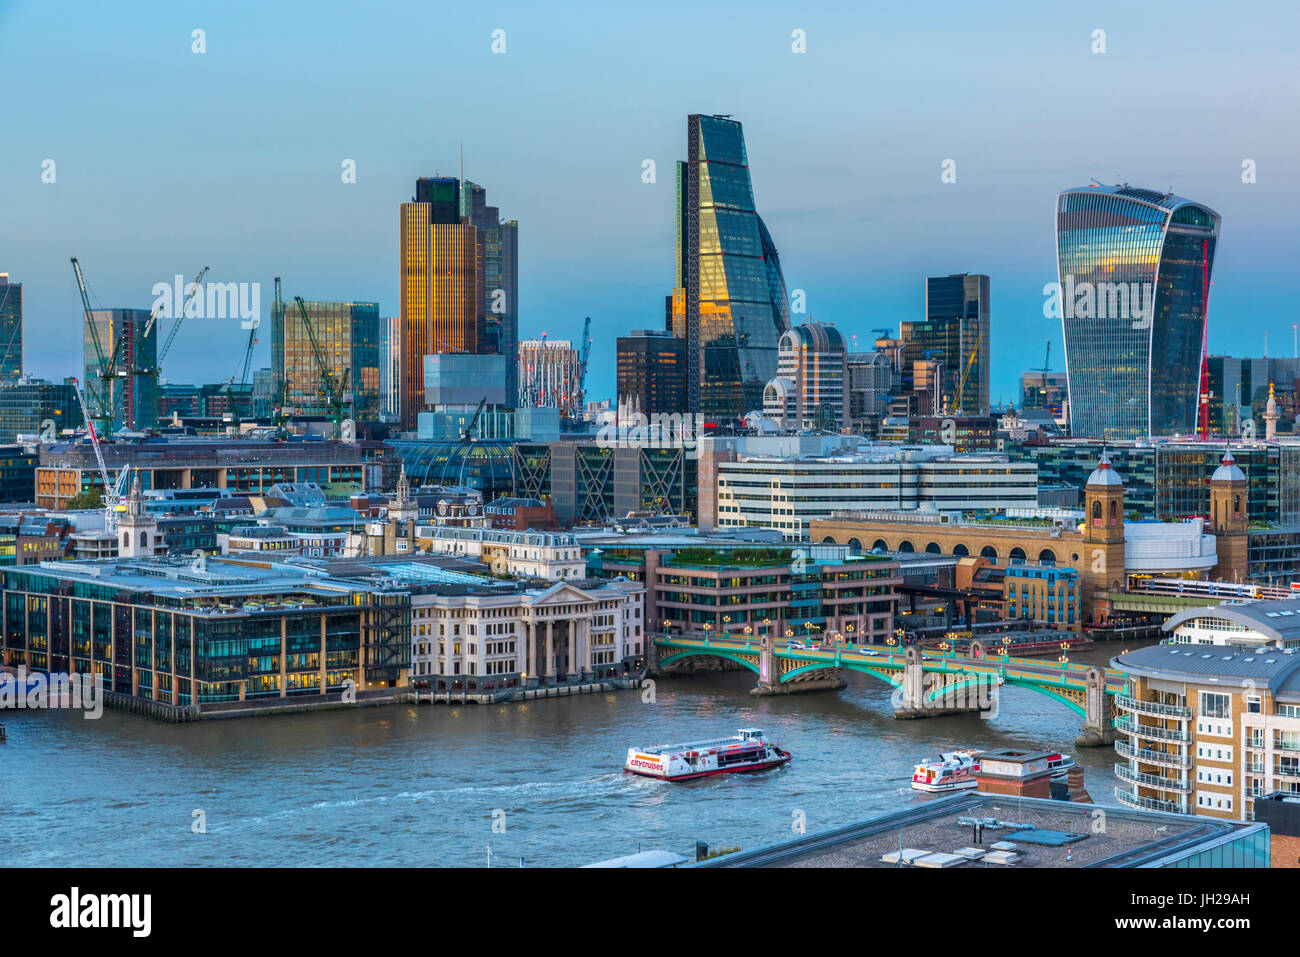 City of London skyline, Tower 42, The Cheesegrater and Walkie Talkie skyscrapers, London, England, United Kingdom, - Stock Image